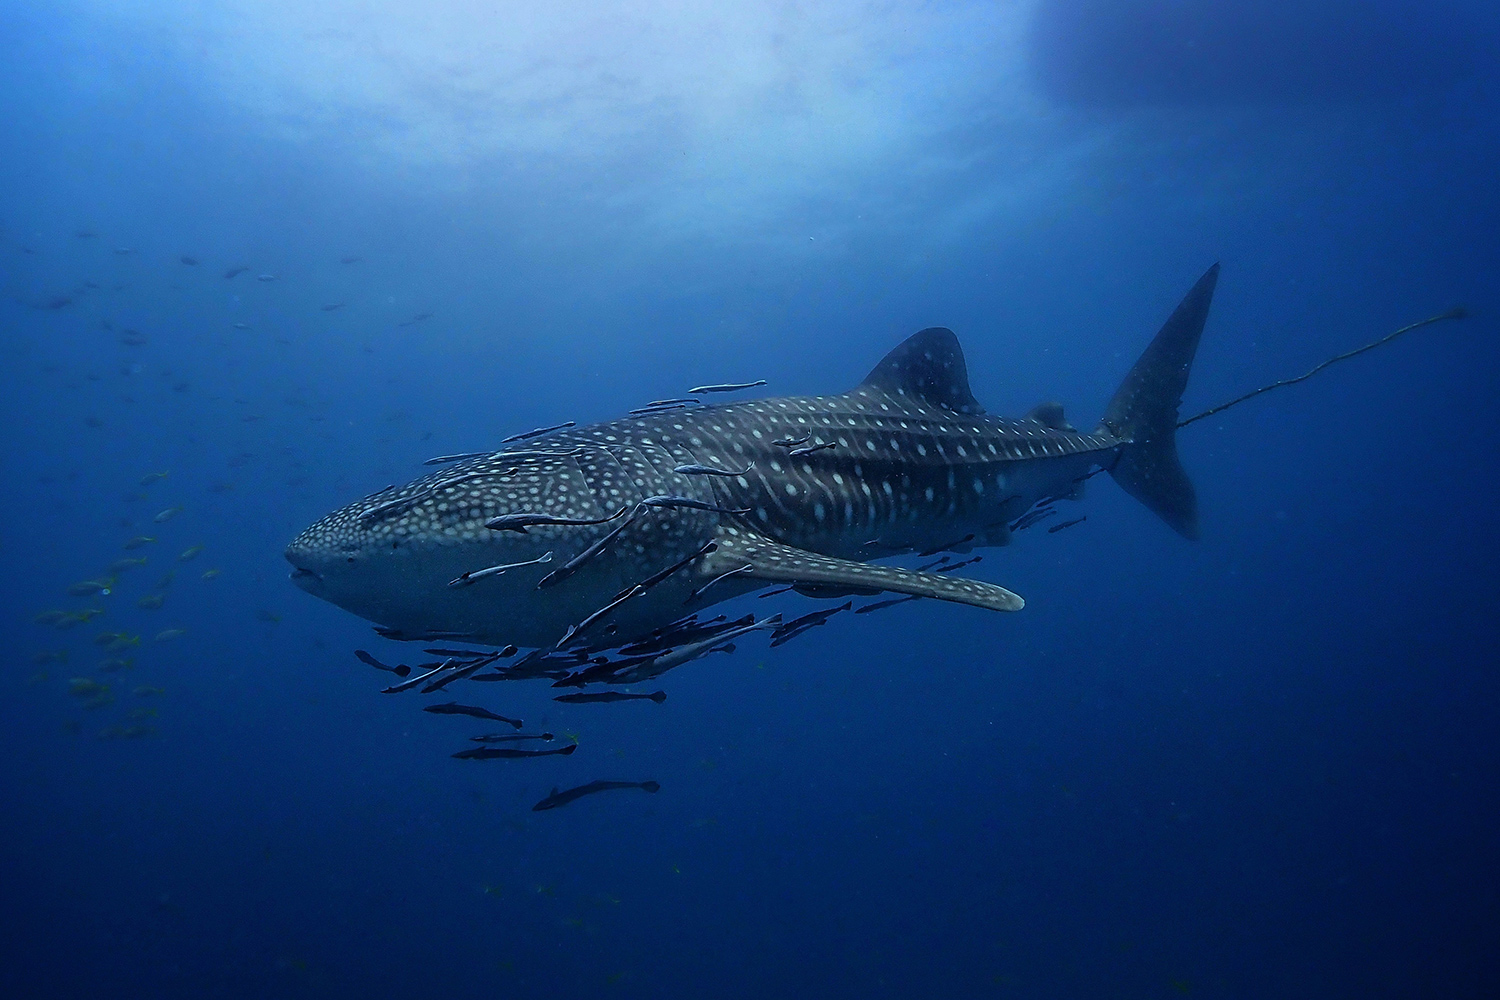 A whale shark is spotted between Koh Tao and Koh Phangan in the Gulf of Thailand. (Photo by Ban's Diving Koh Tao)